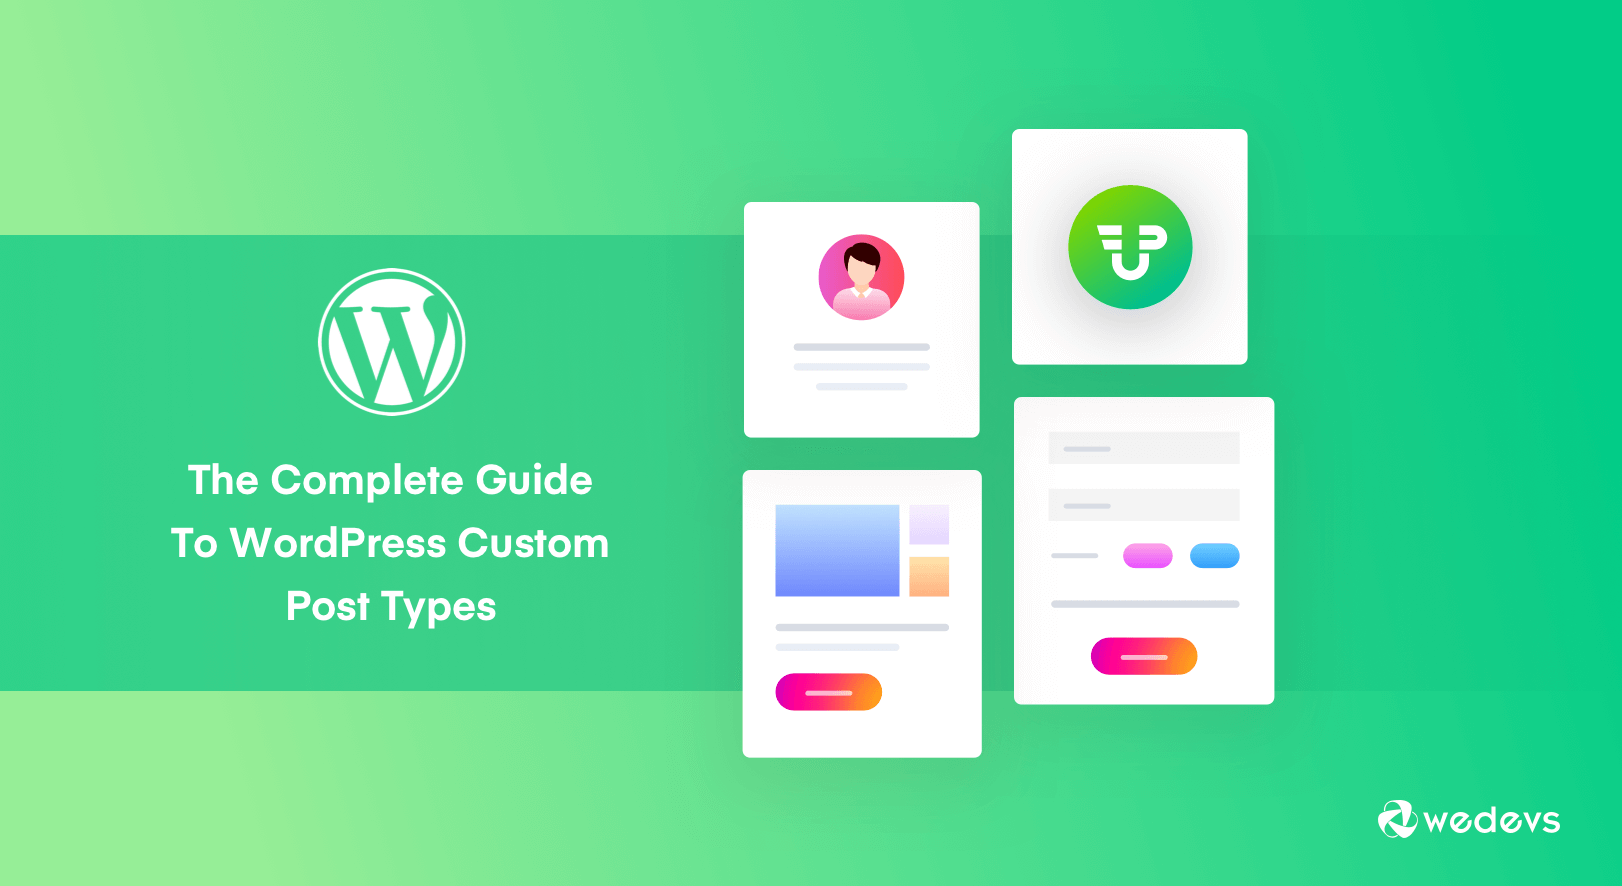 The Complete Guide To WordPress Custom Post Types